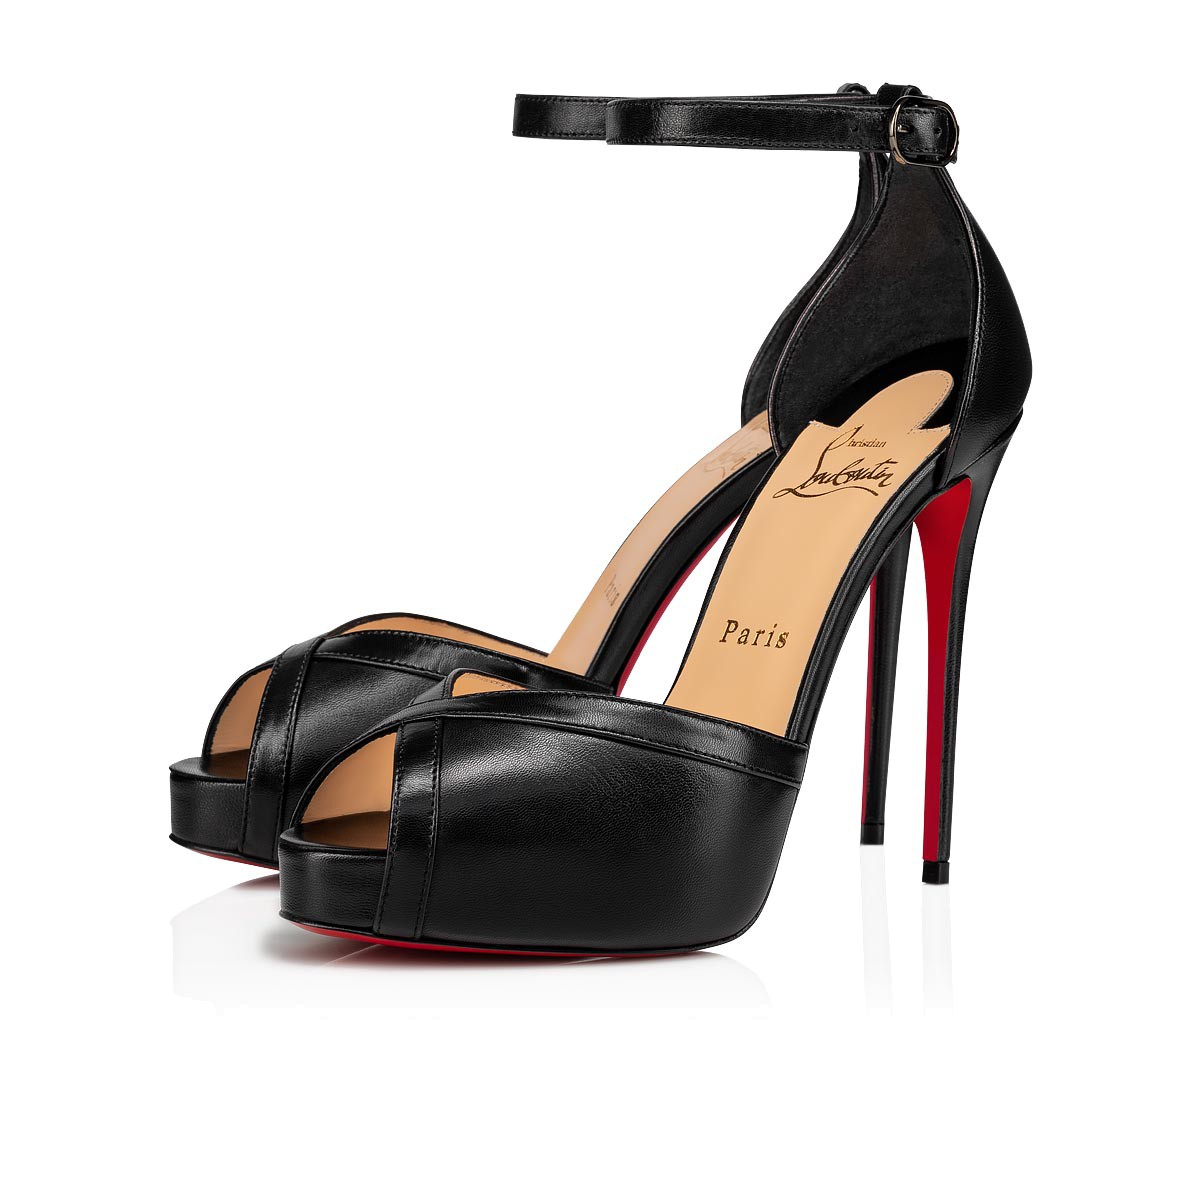 Shoes - Very Cathy - Christian Louboutin